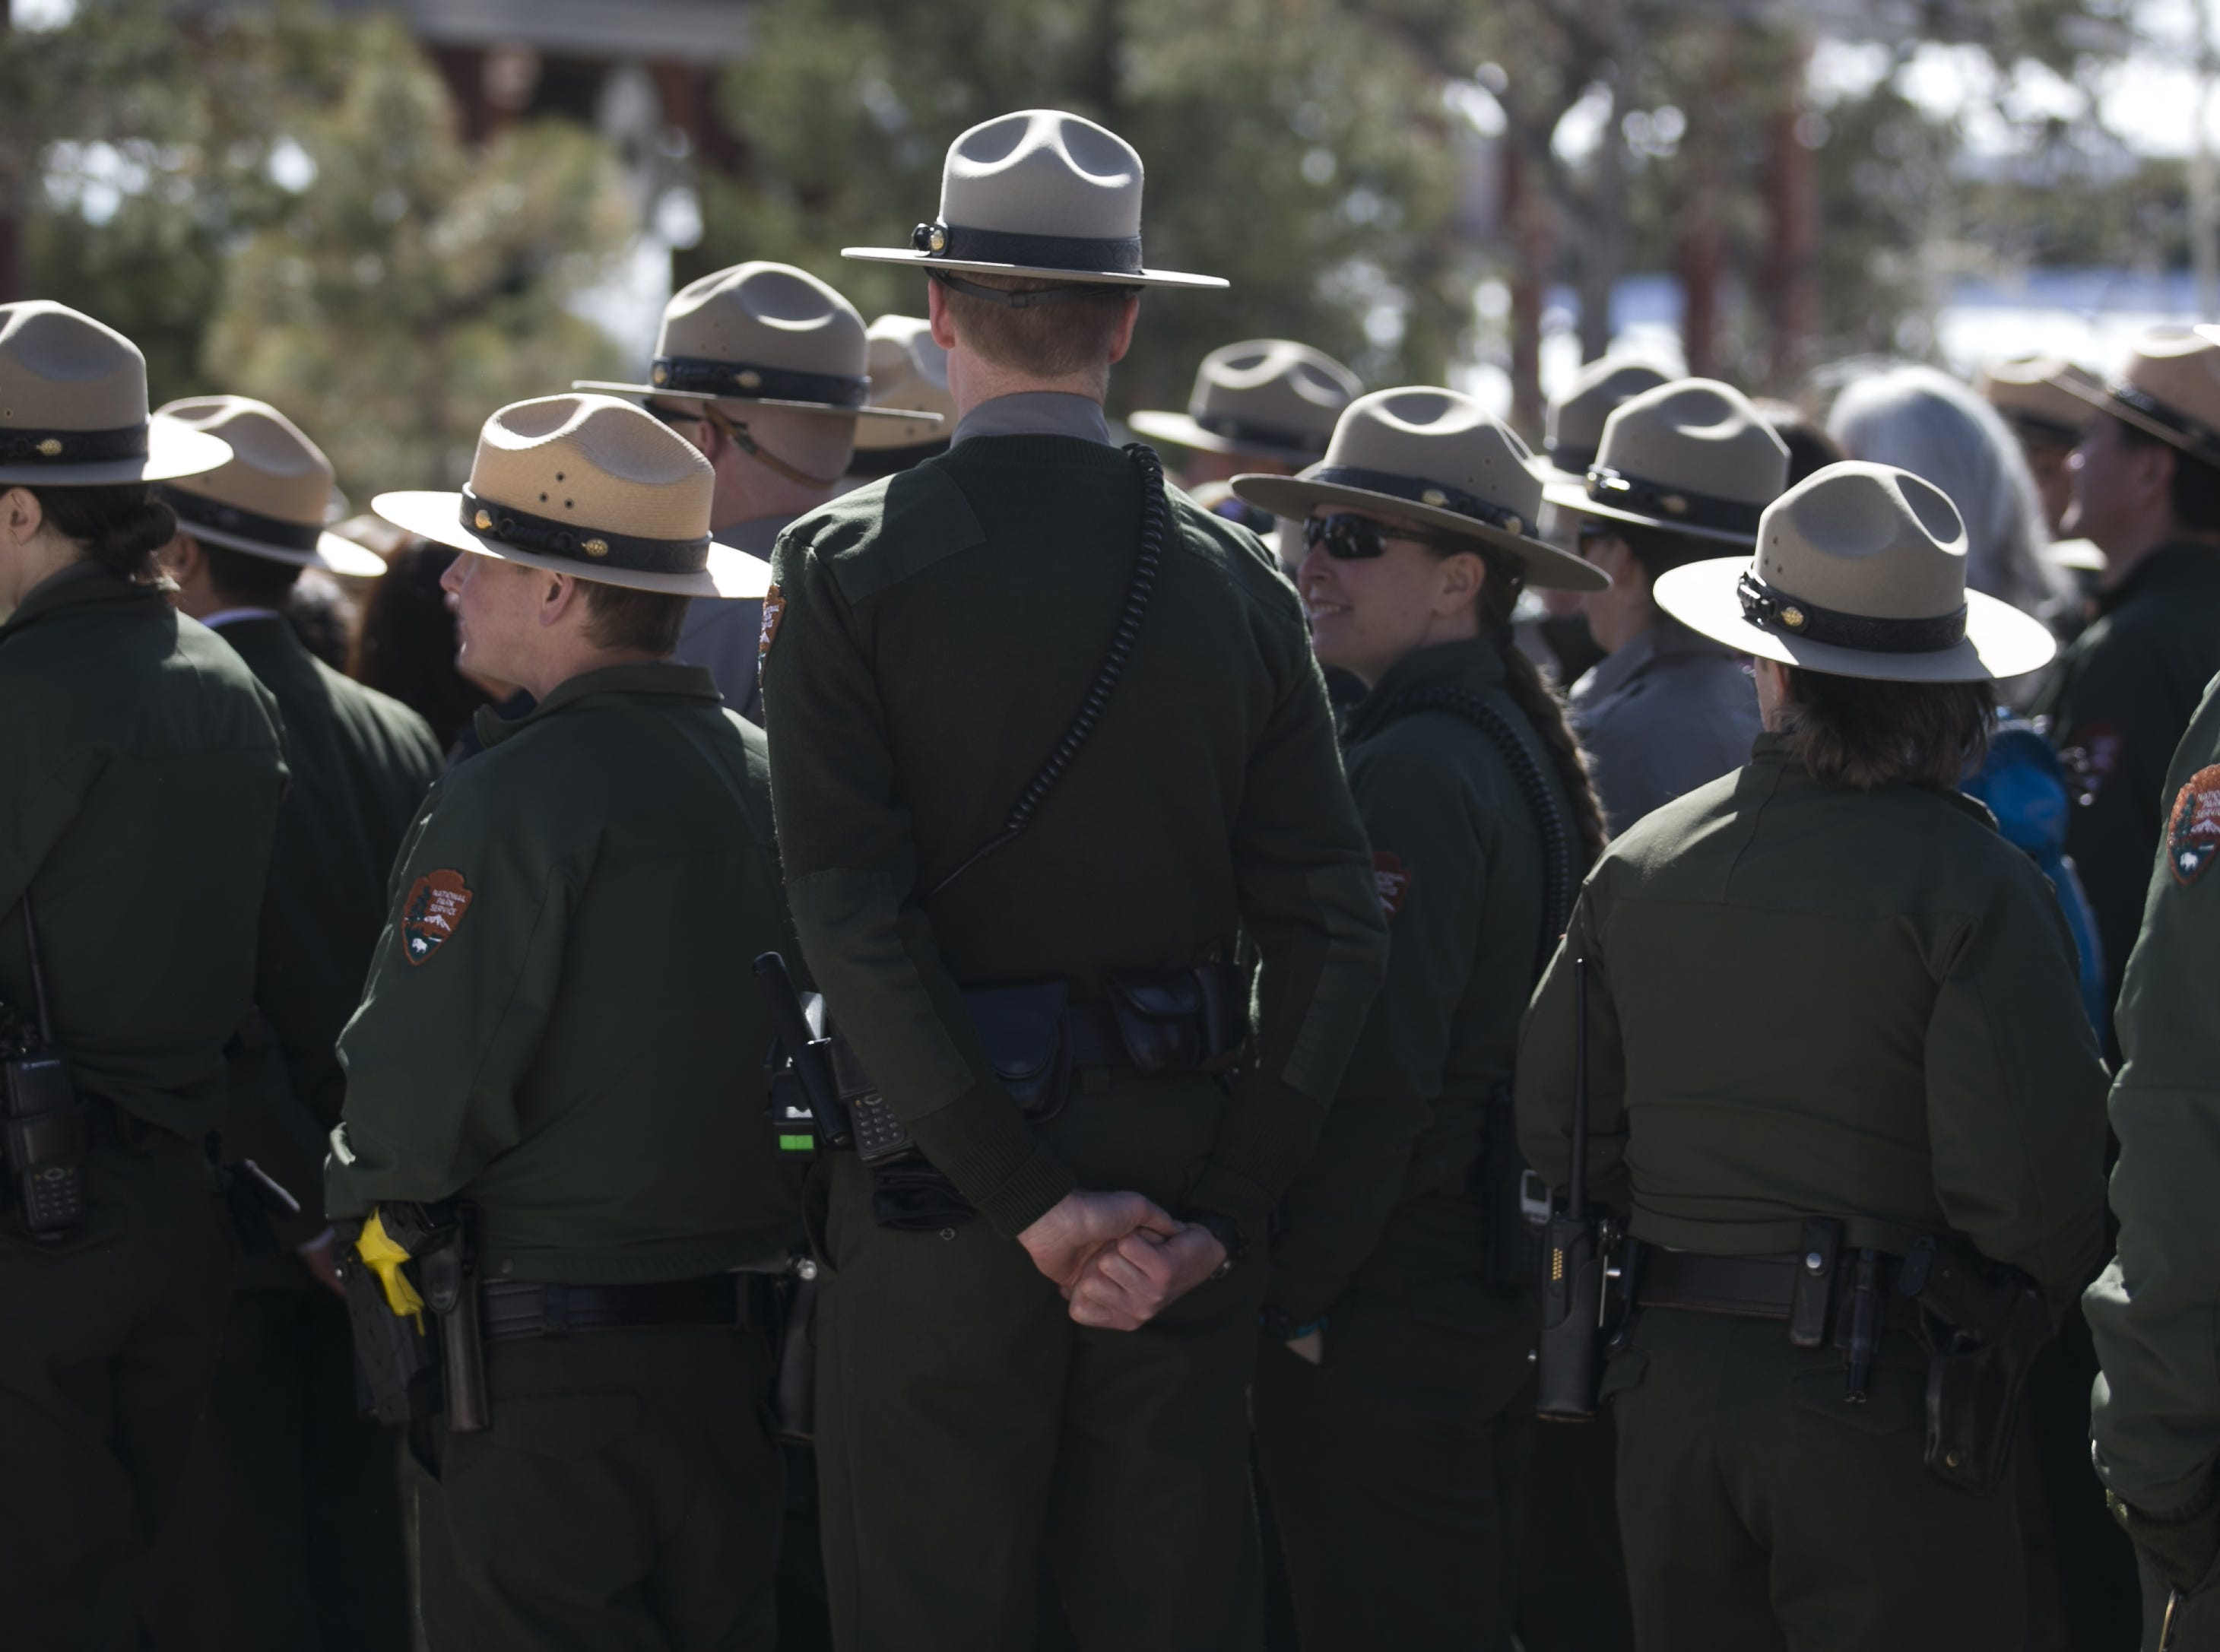 Park rangers stand for a group photo at the Grand Canyon during the park's 100th anniversary on Feb. 26, 2019.